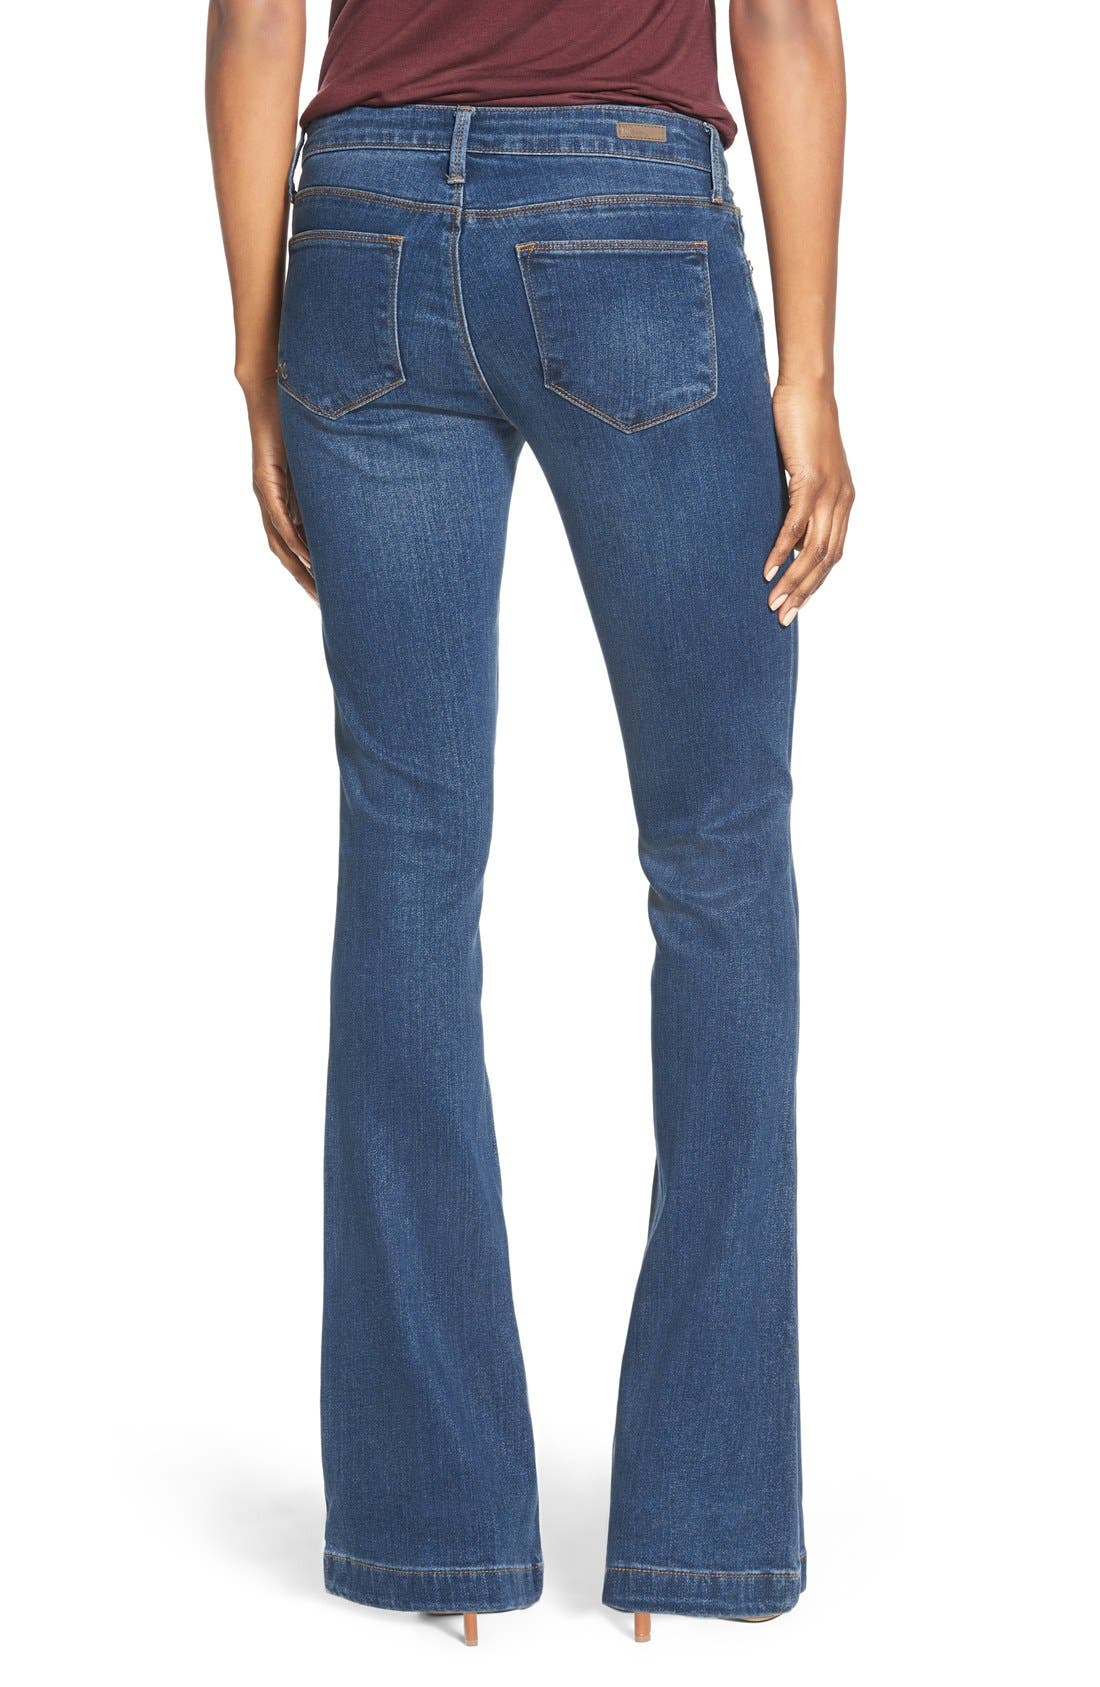 Alternate Image 2  - KUT from the Kloth 'Chrissy' Stretch Flare Leg Jeans (Inclusion)